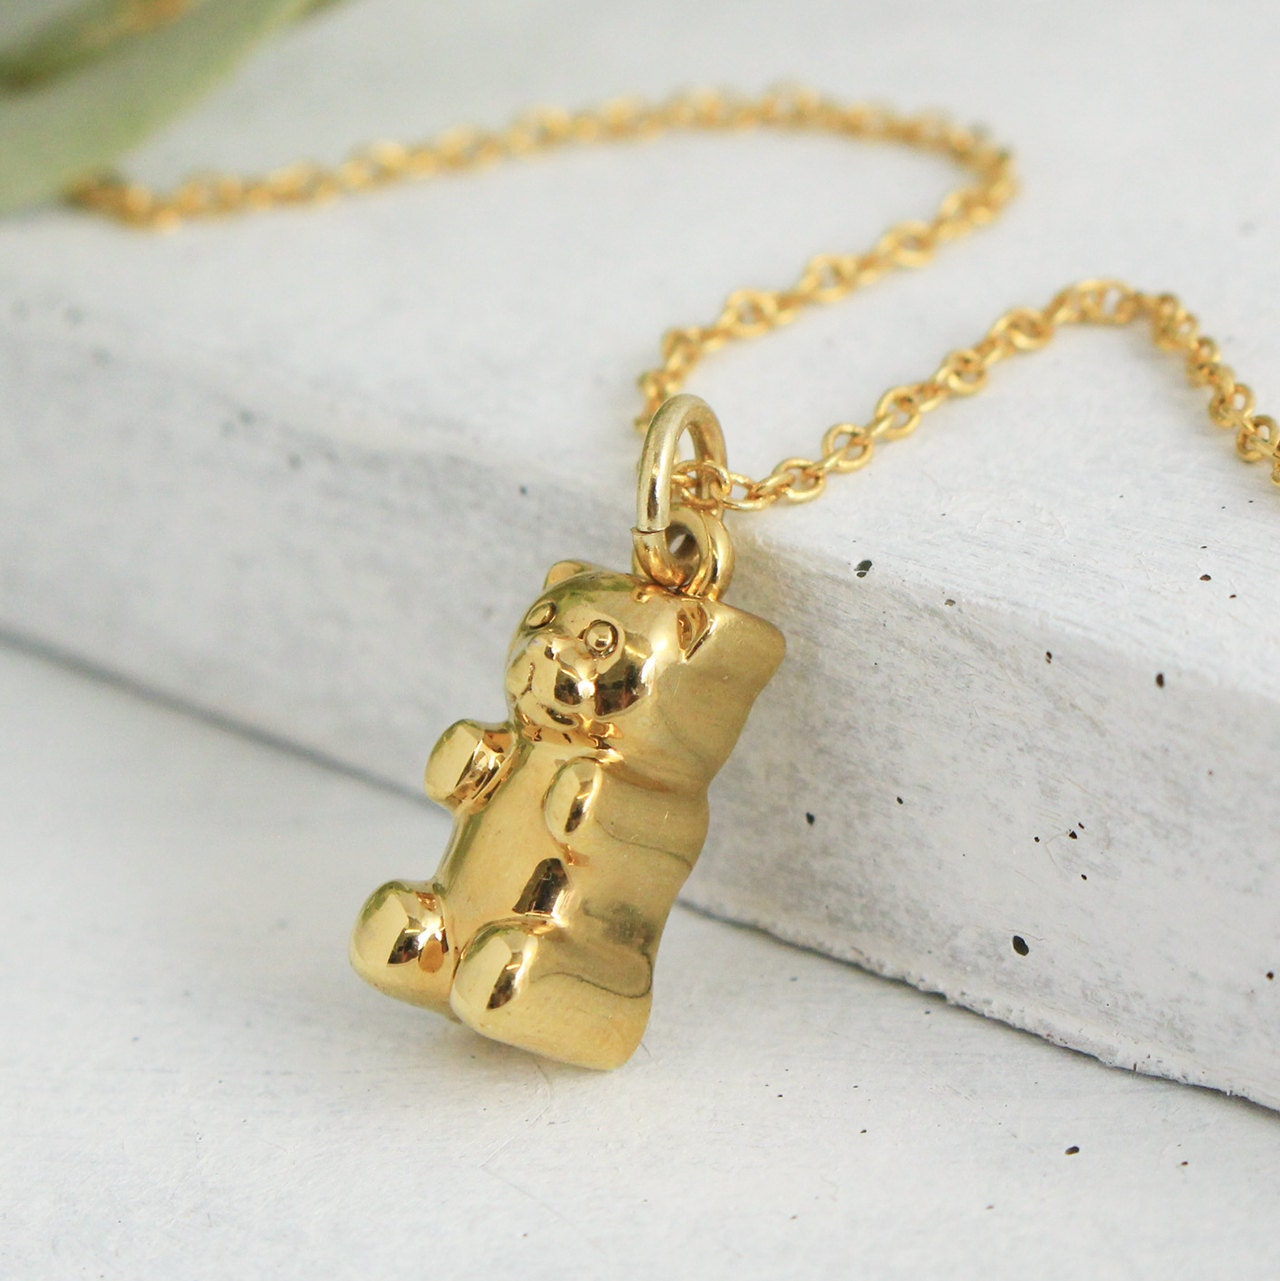 gummy bear necklace gold personalized jewelry. Black Bedroom Furniture Sets. Home Design Ideas